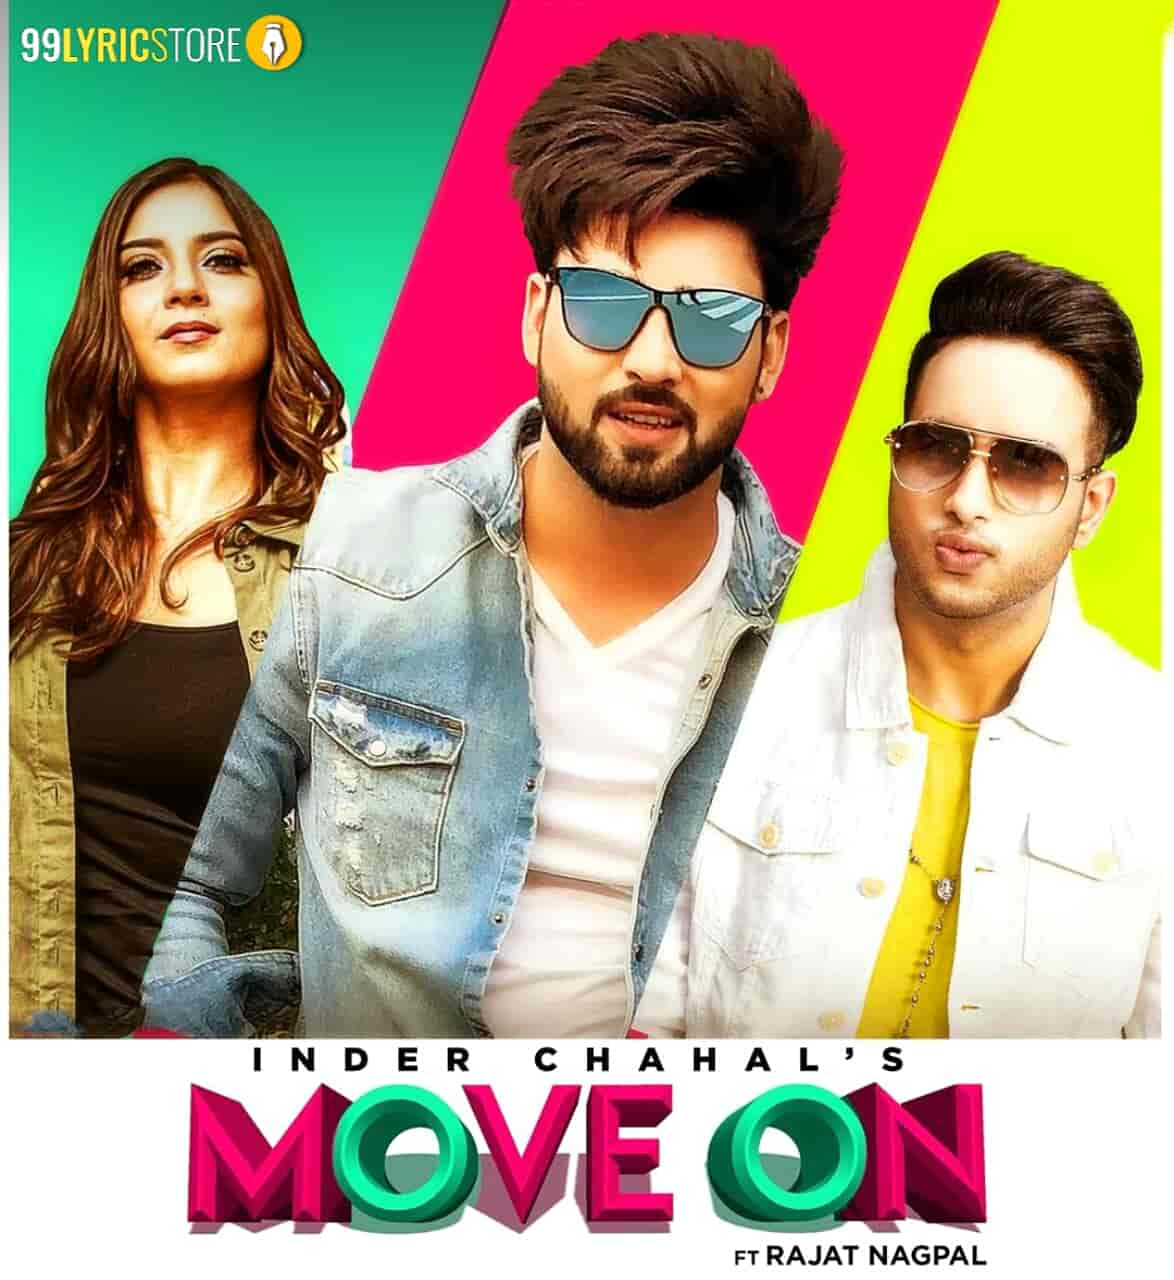 Move On Inder Chahal Song Images